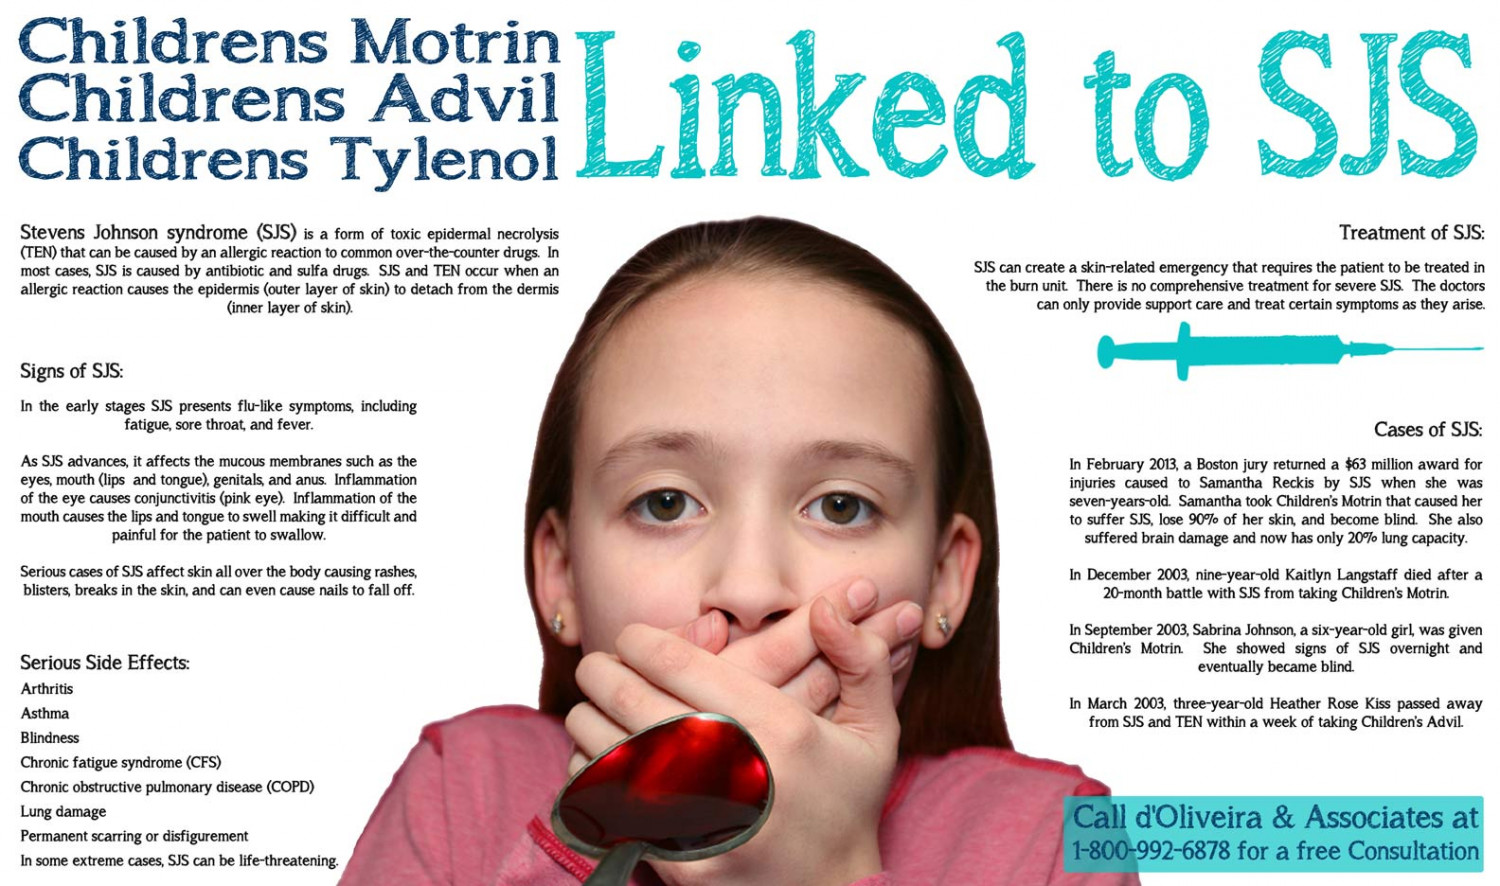 Sjs Lawyer Childrens Motrin Advil Tylenol Linked To